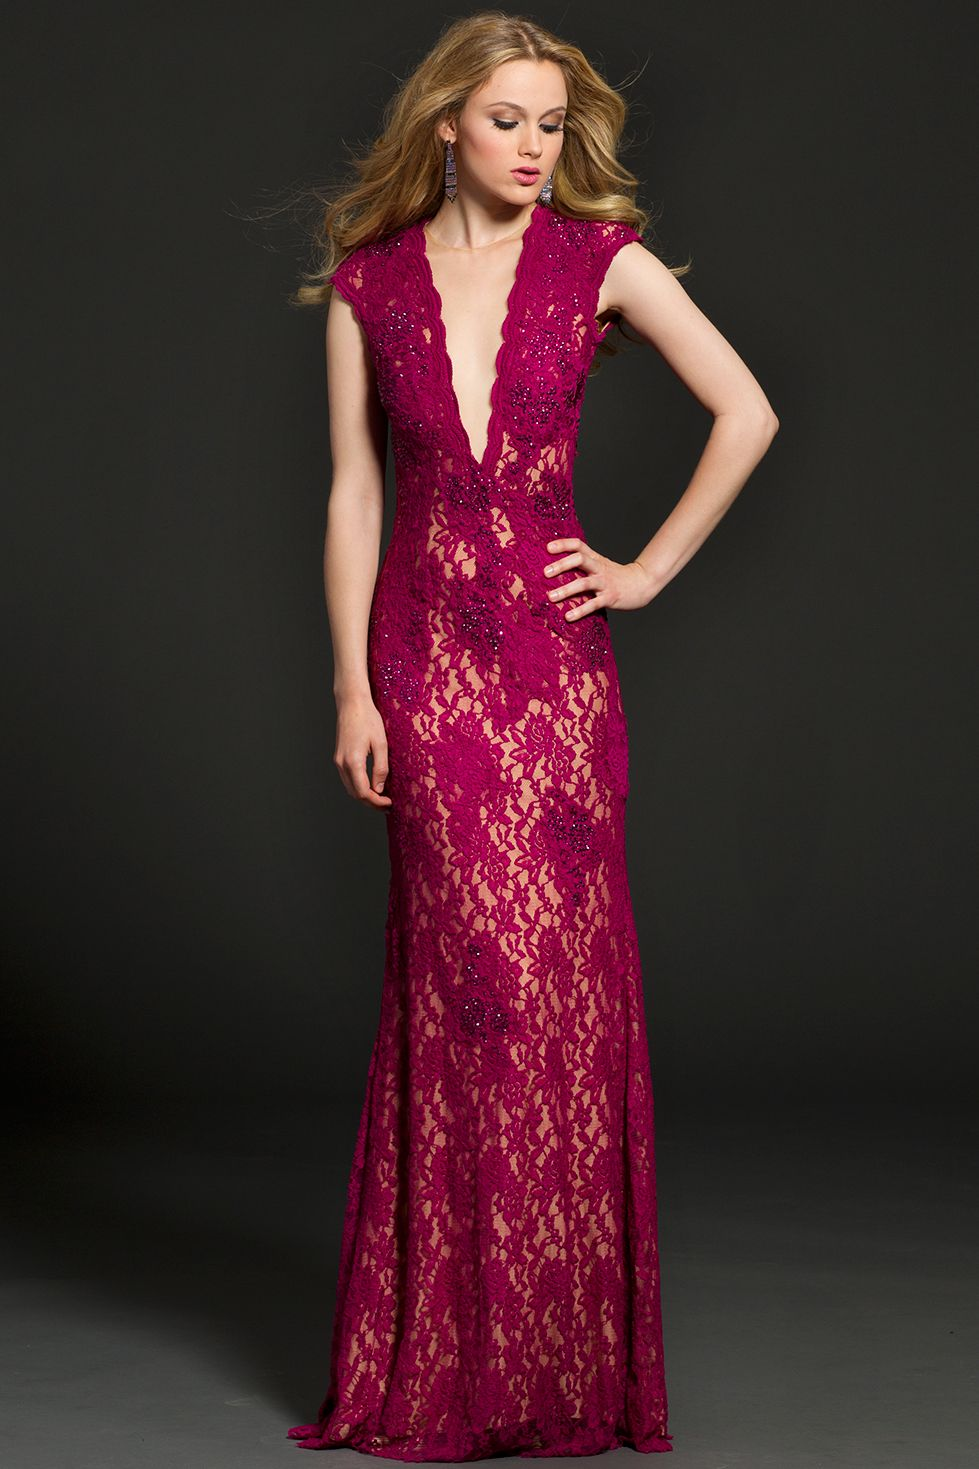 3bb42b3009158 Open Back Lace Jovani Gown, #9884, in Wine. | Cap sleeve Jovani fitted dress  with a sexy open back and sheer illusion plunging neckline features an ...